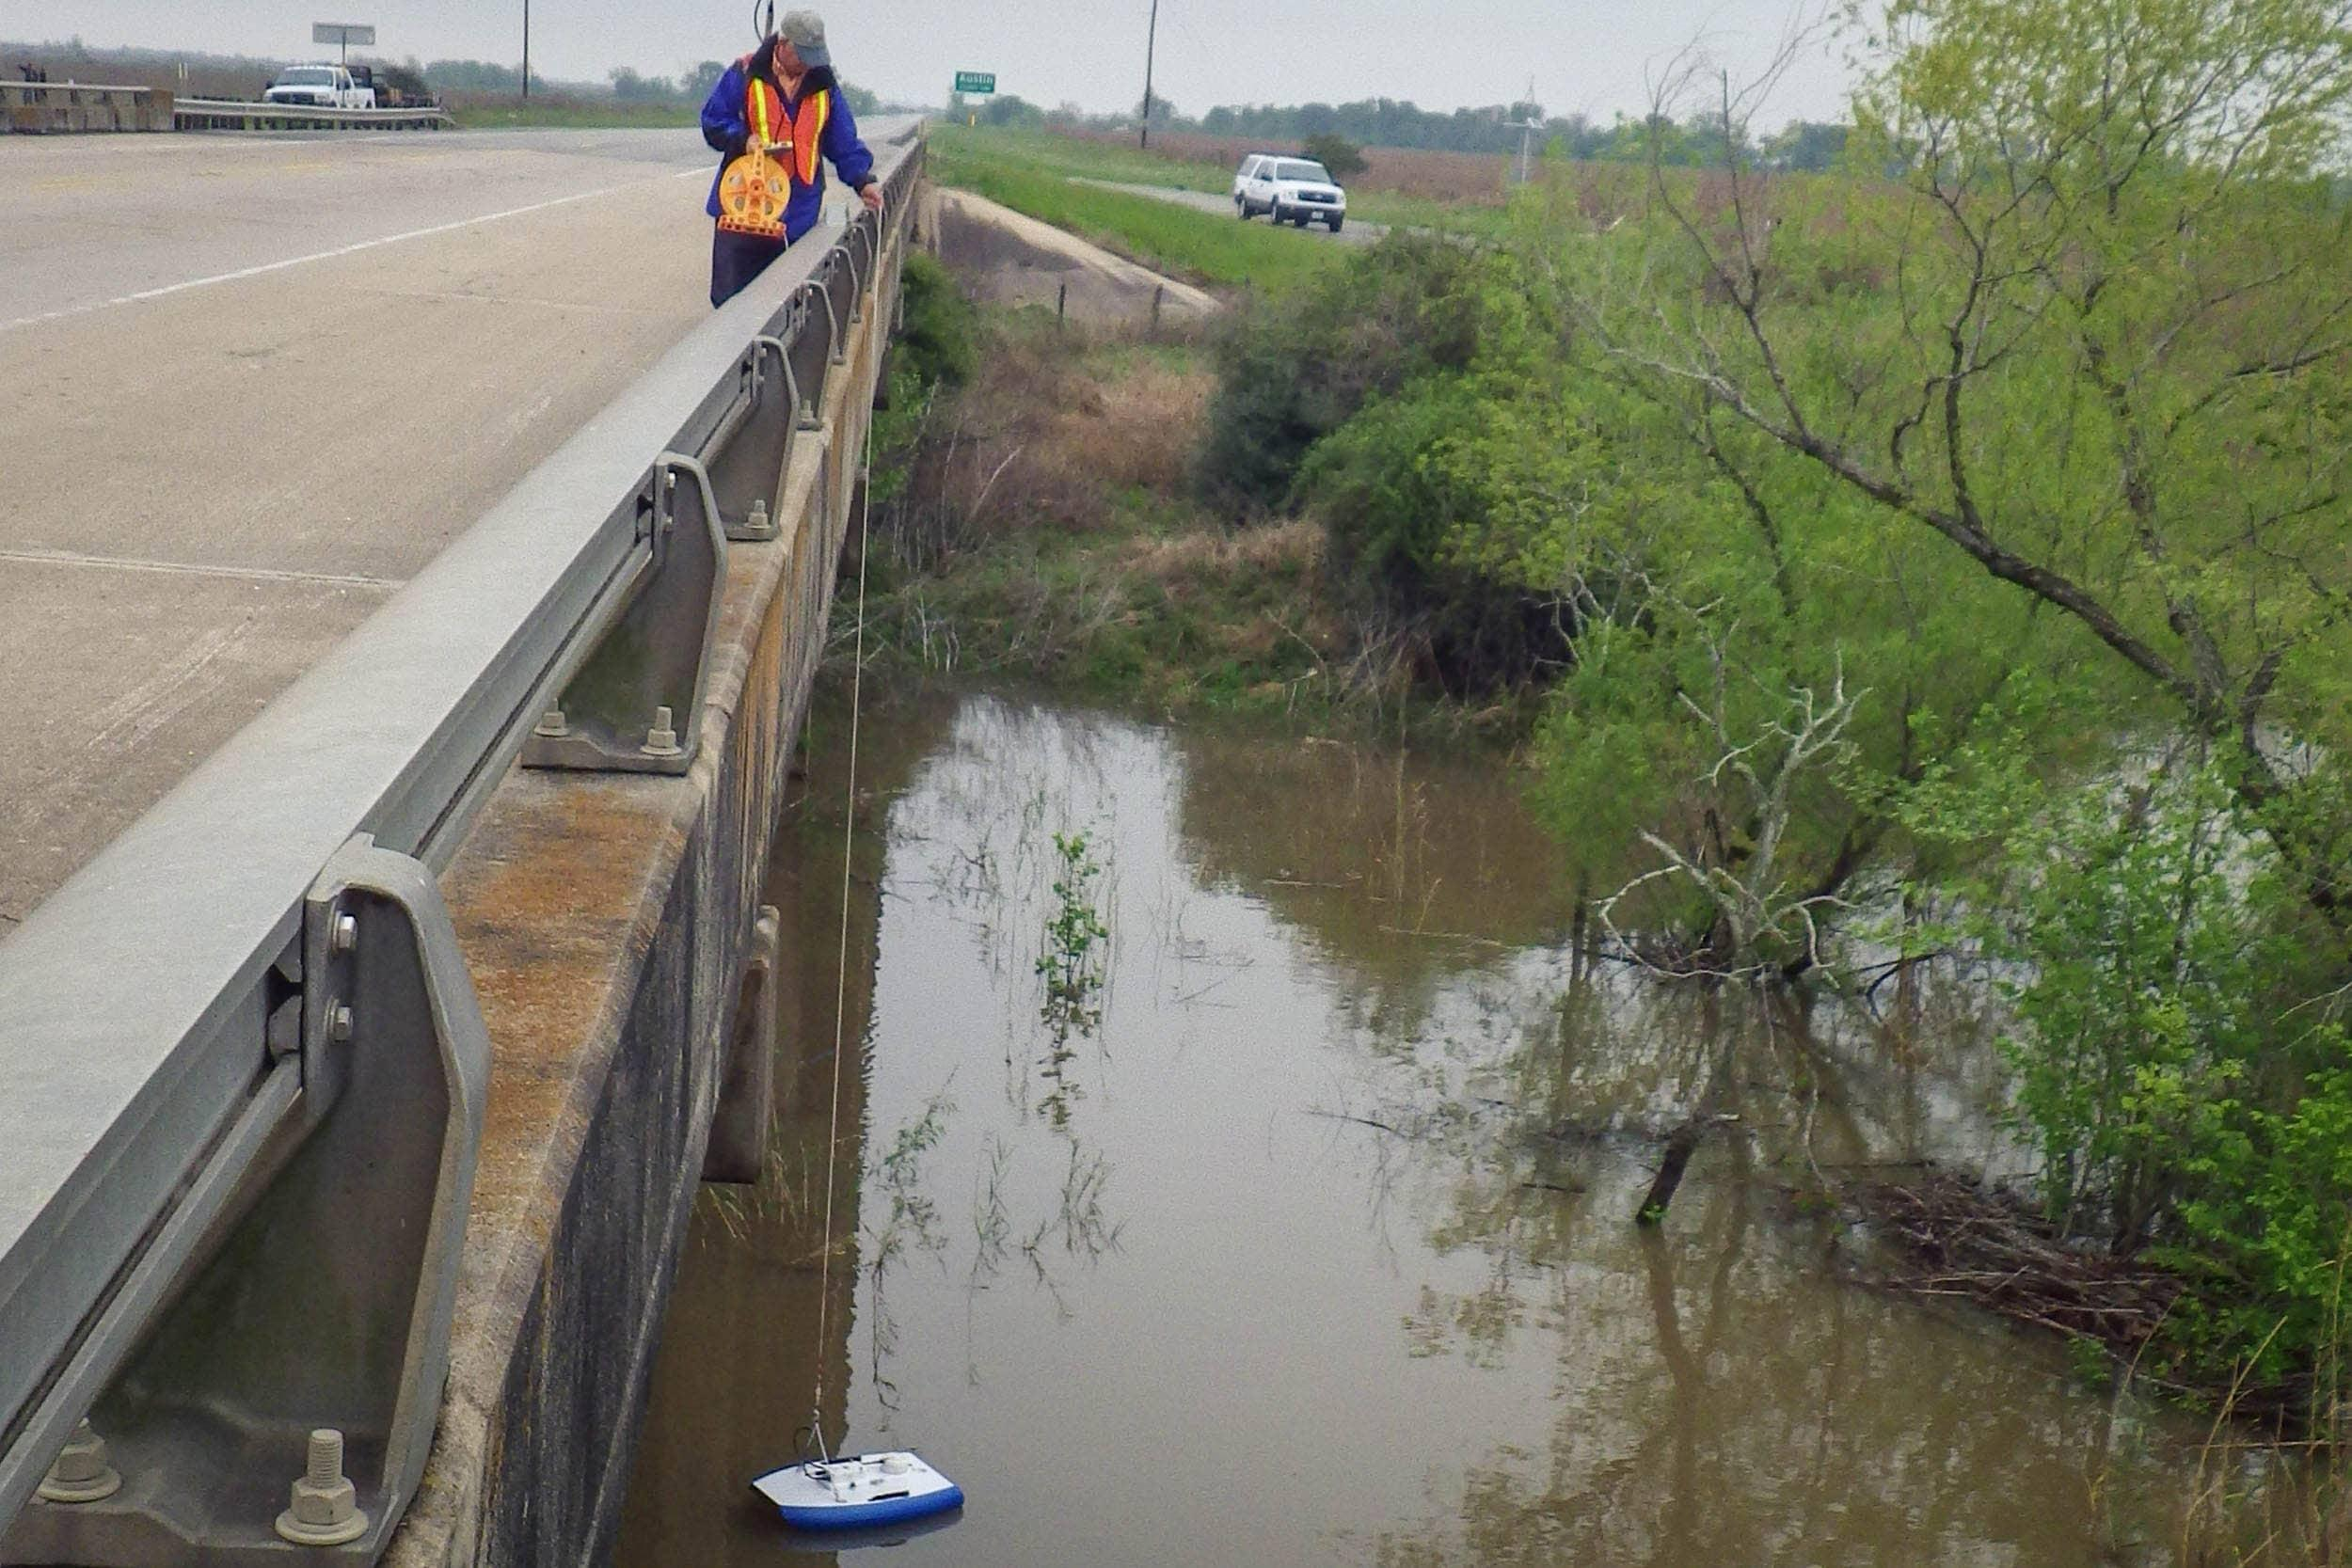 James Yokley collects flow data with a SonTek flow boat.